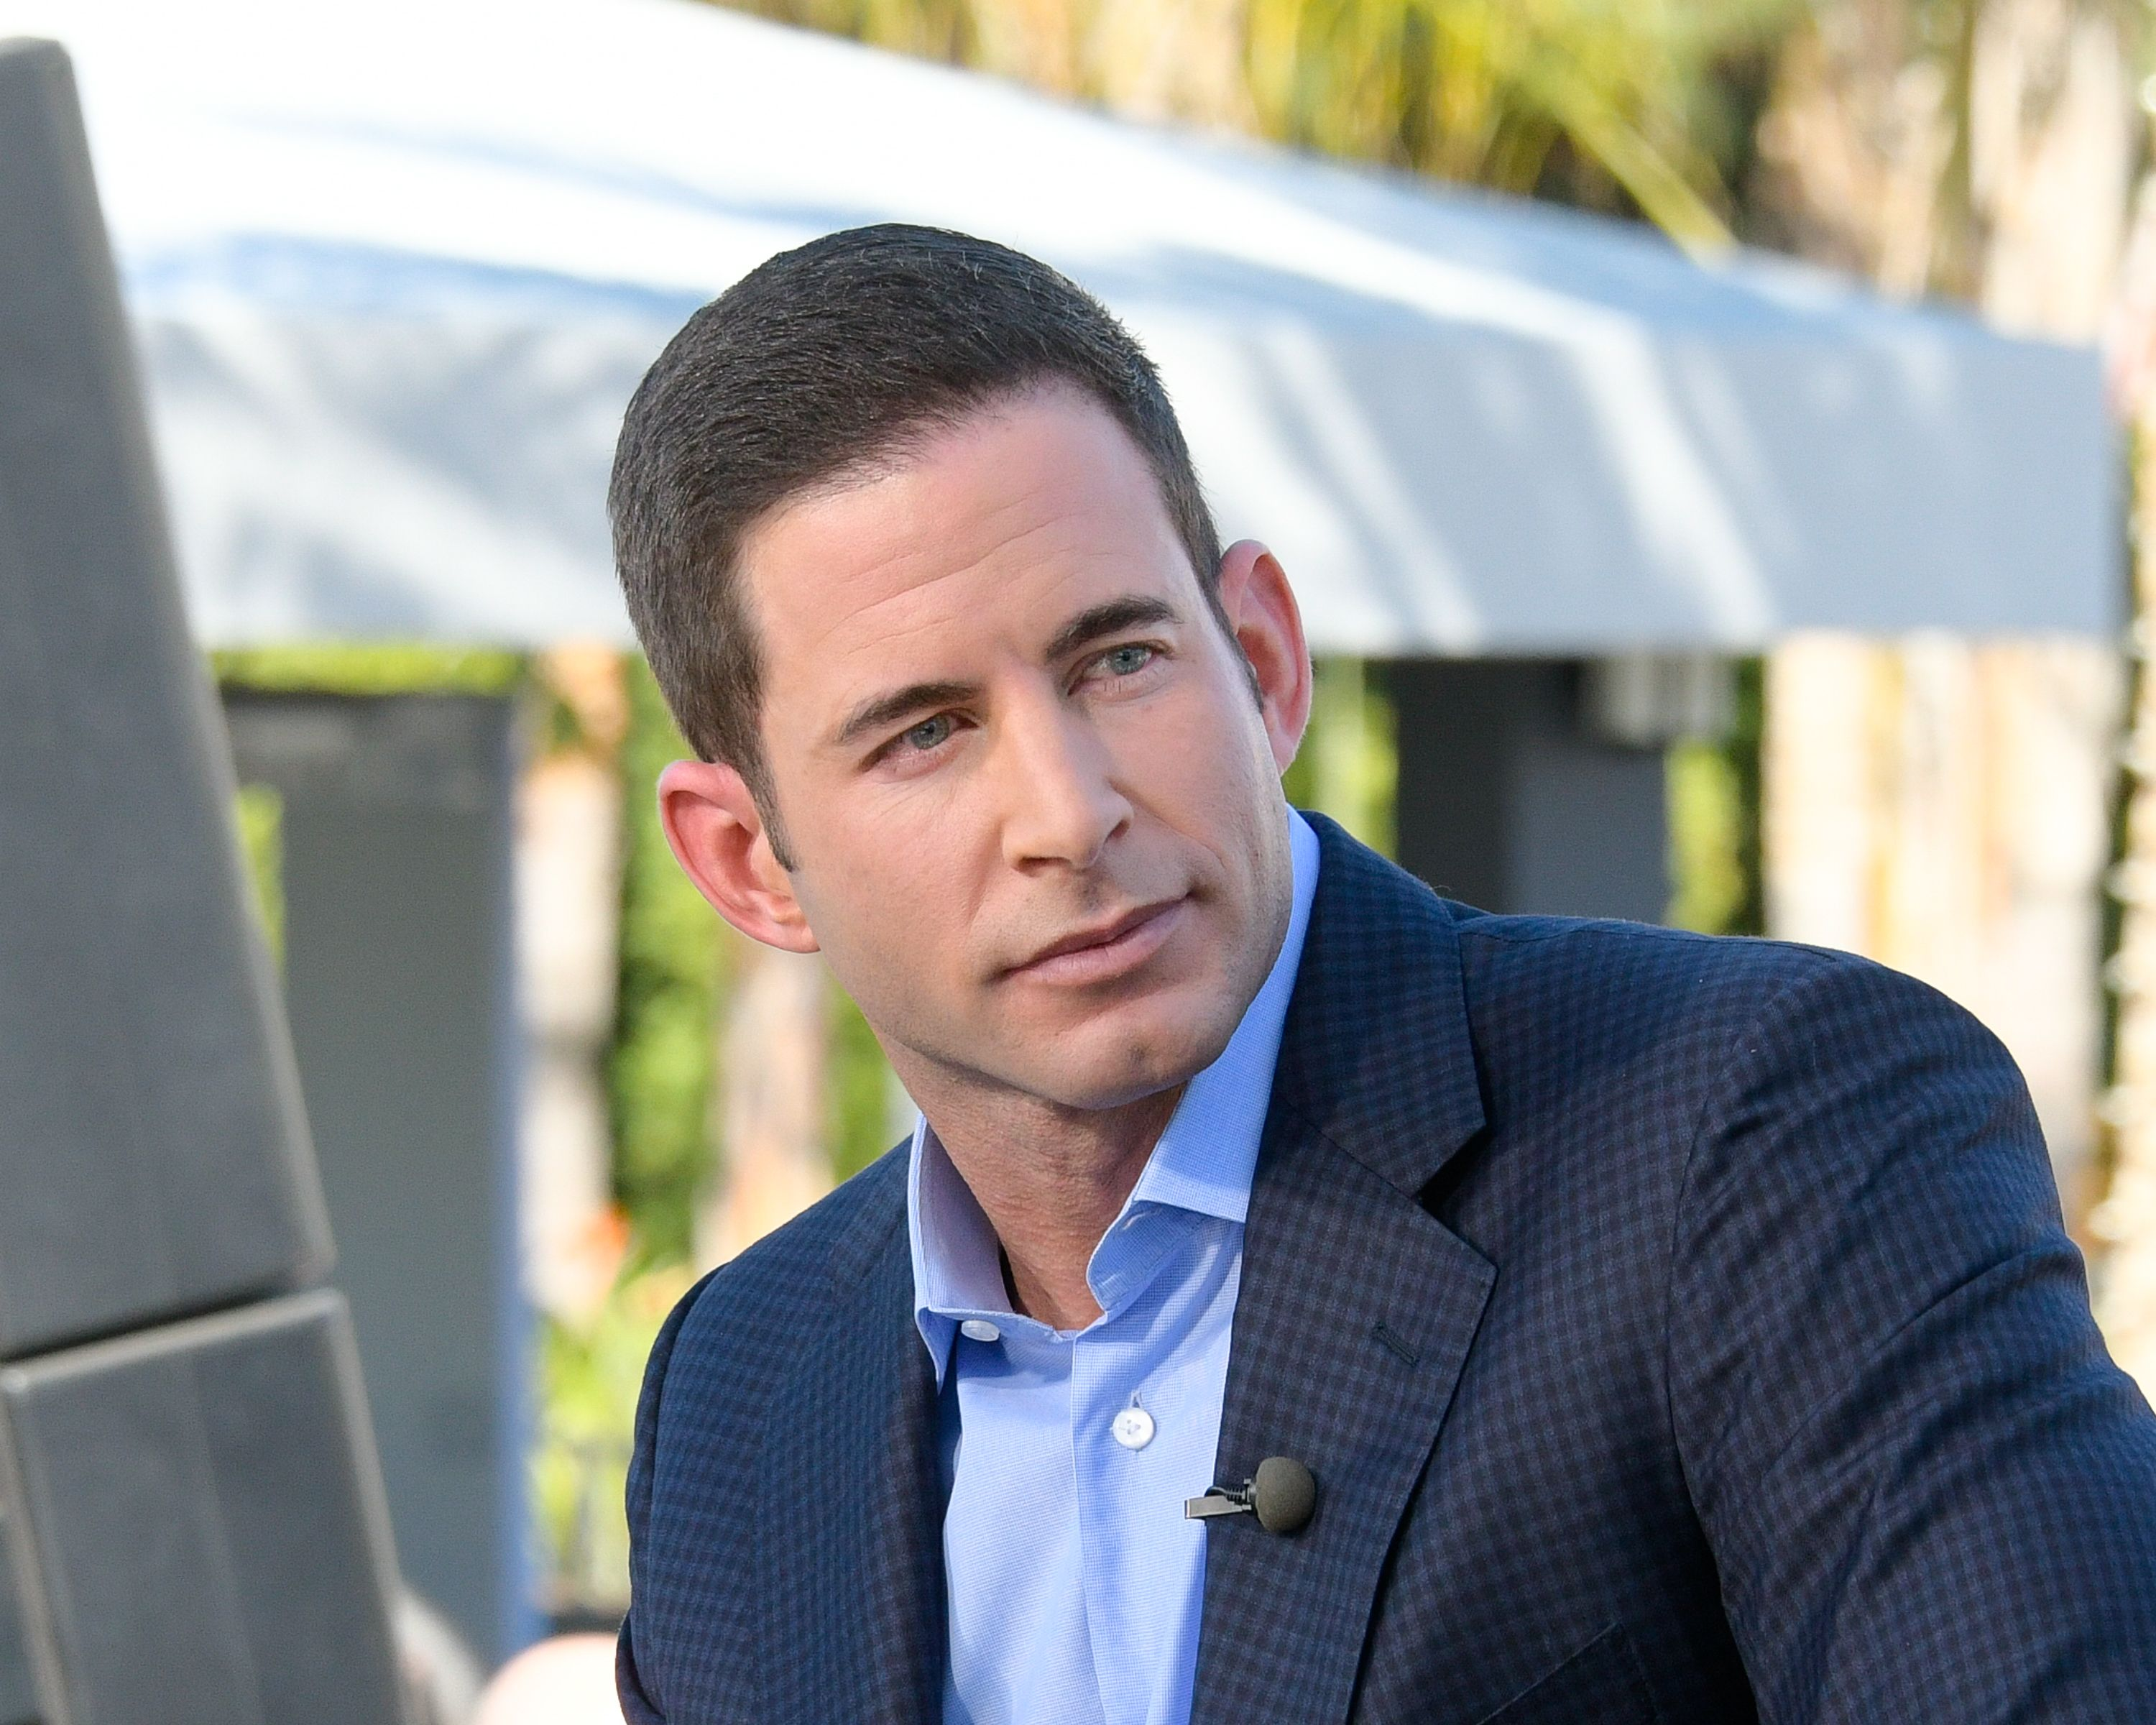 Tarek El Moussa at Universal Studios Hollywood in February 2017 in Universal City, California | Source: Getty Images